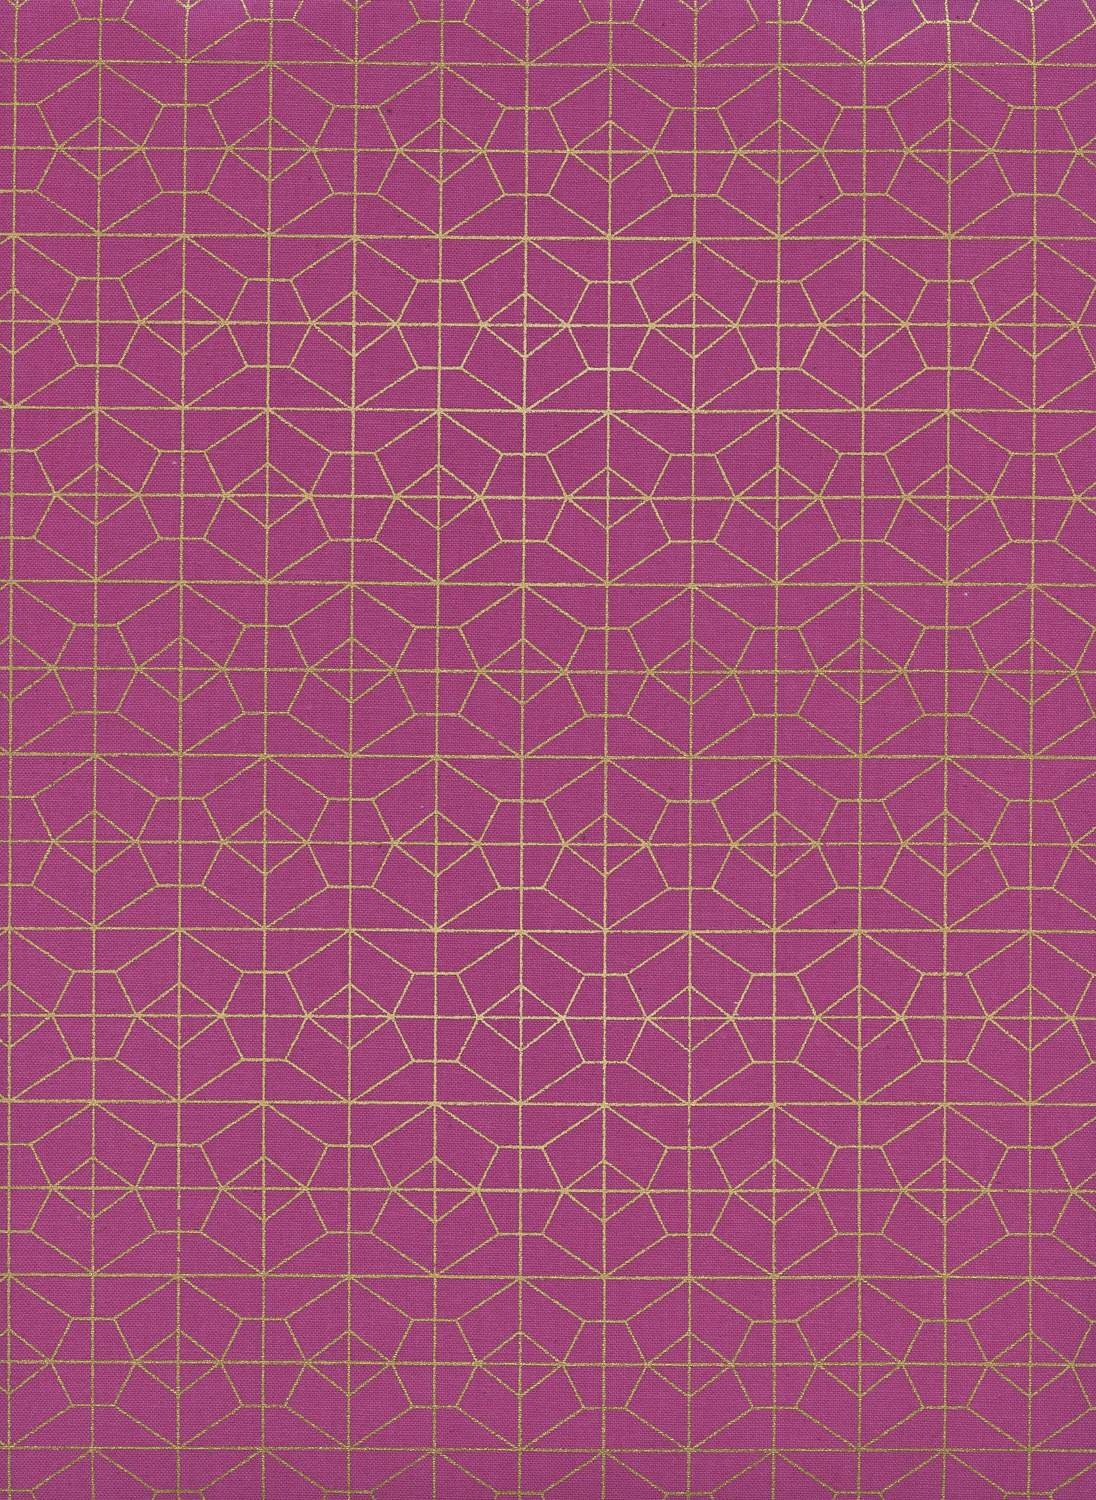 Geo Grid in Fuschia Metallic by Rashida Coleman Hale from the Akoma collection for Cotton and Steel #R1976001